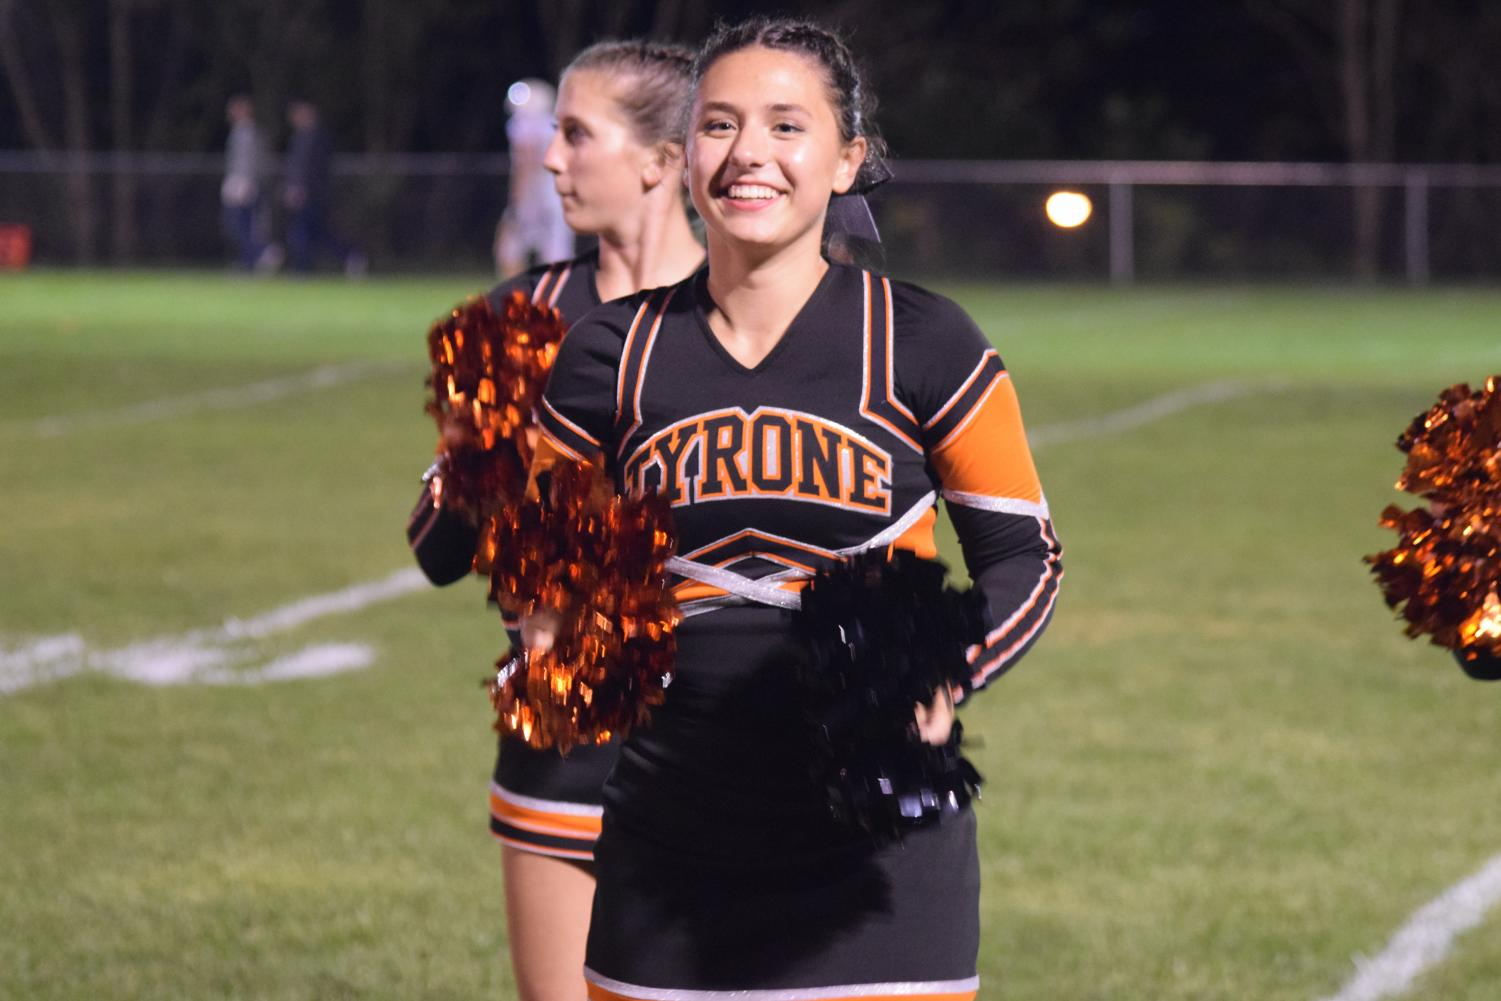 Grace Legars cheering on the sideline.